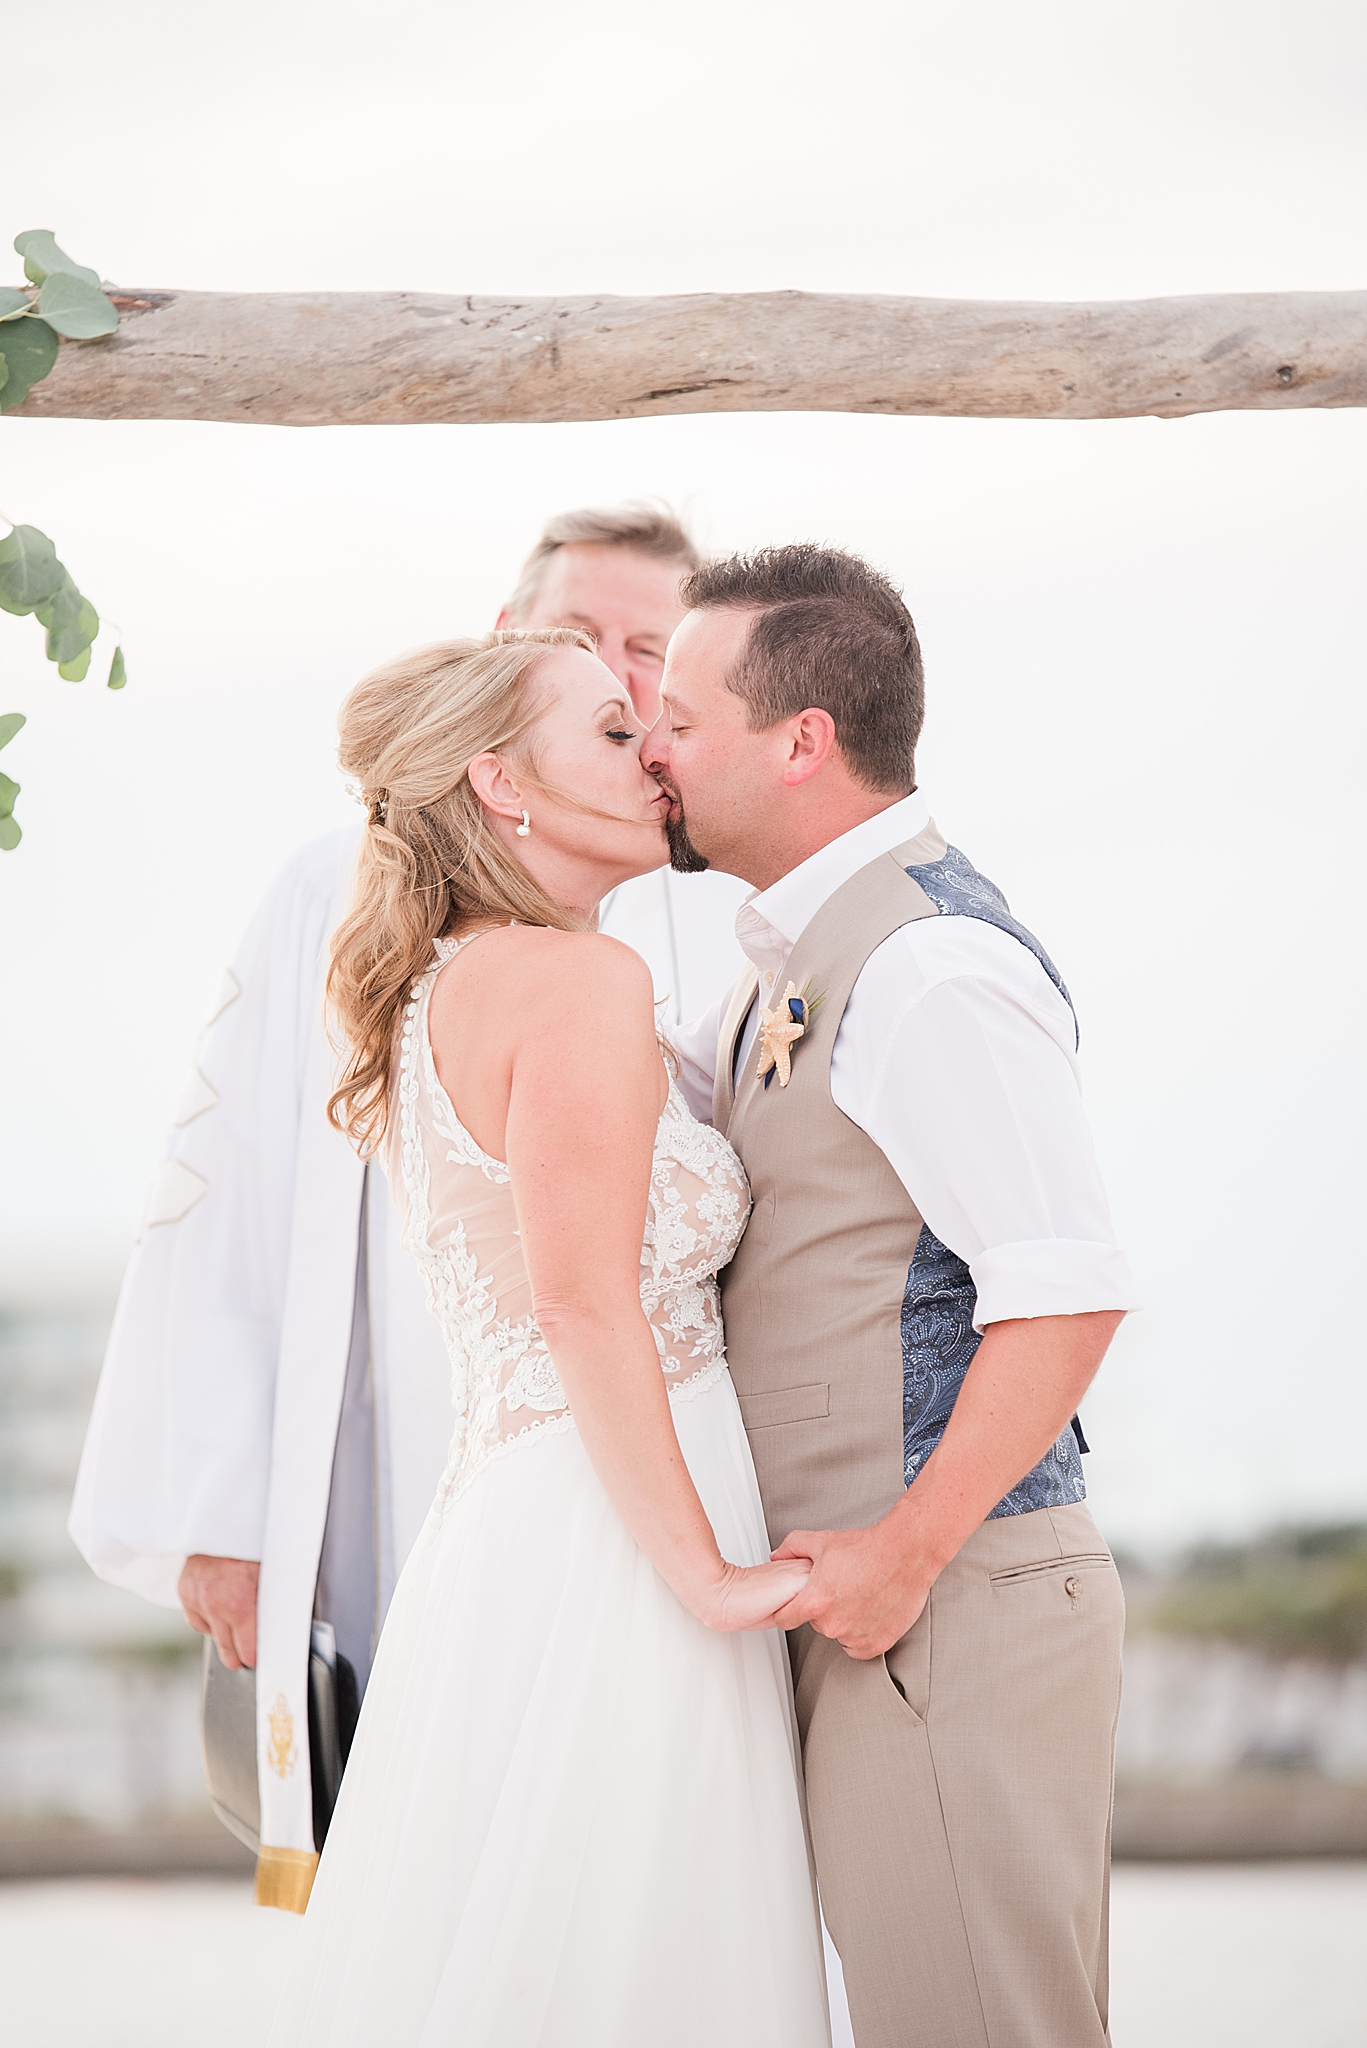 first kiss as husband and wife on beach